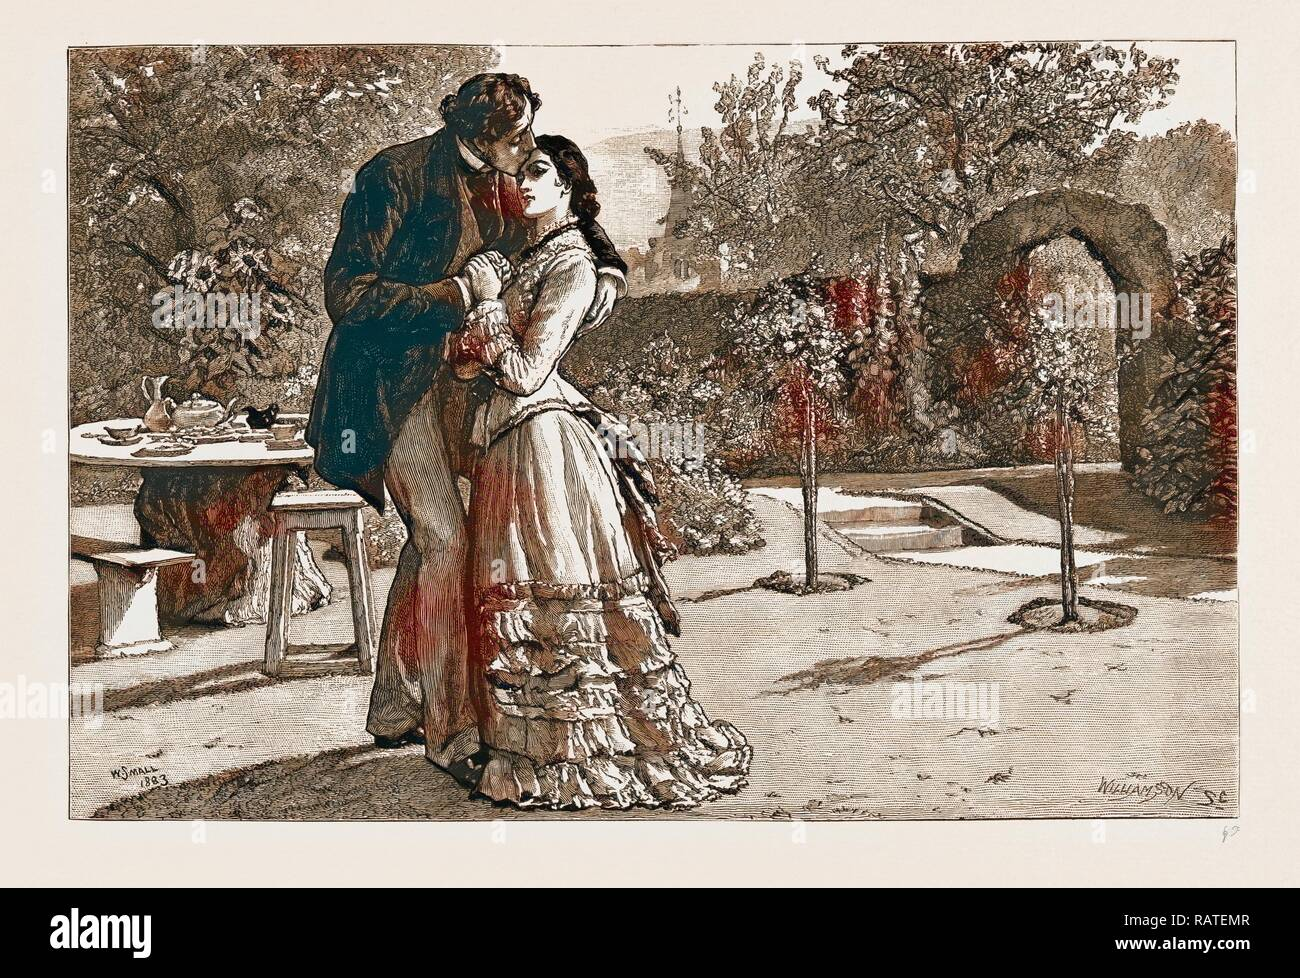 THIRLBY HALL, DRAWN BY WILLIAM SMALL, 1883, Yielding to an uncontrollable impulse, I caught her suddenly in my arms reimagined - Stock Image